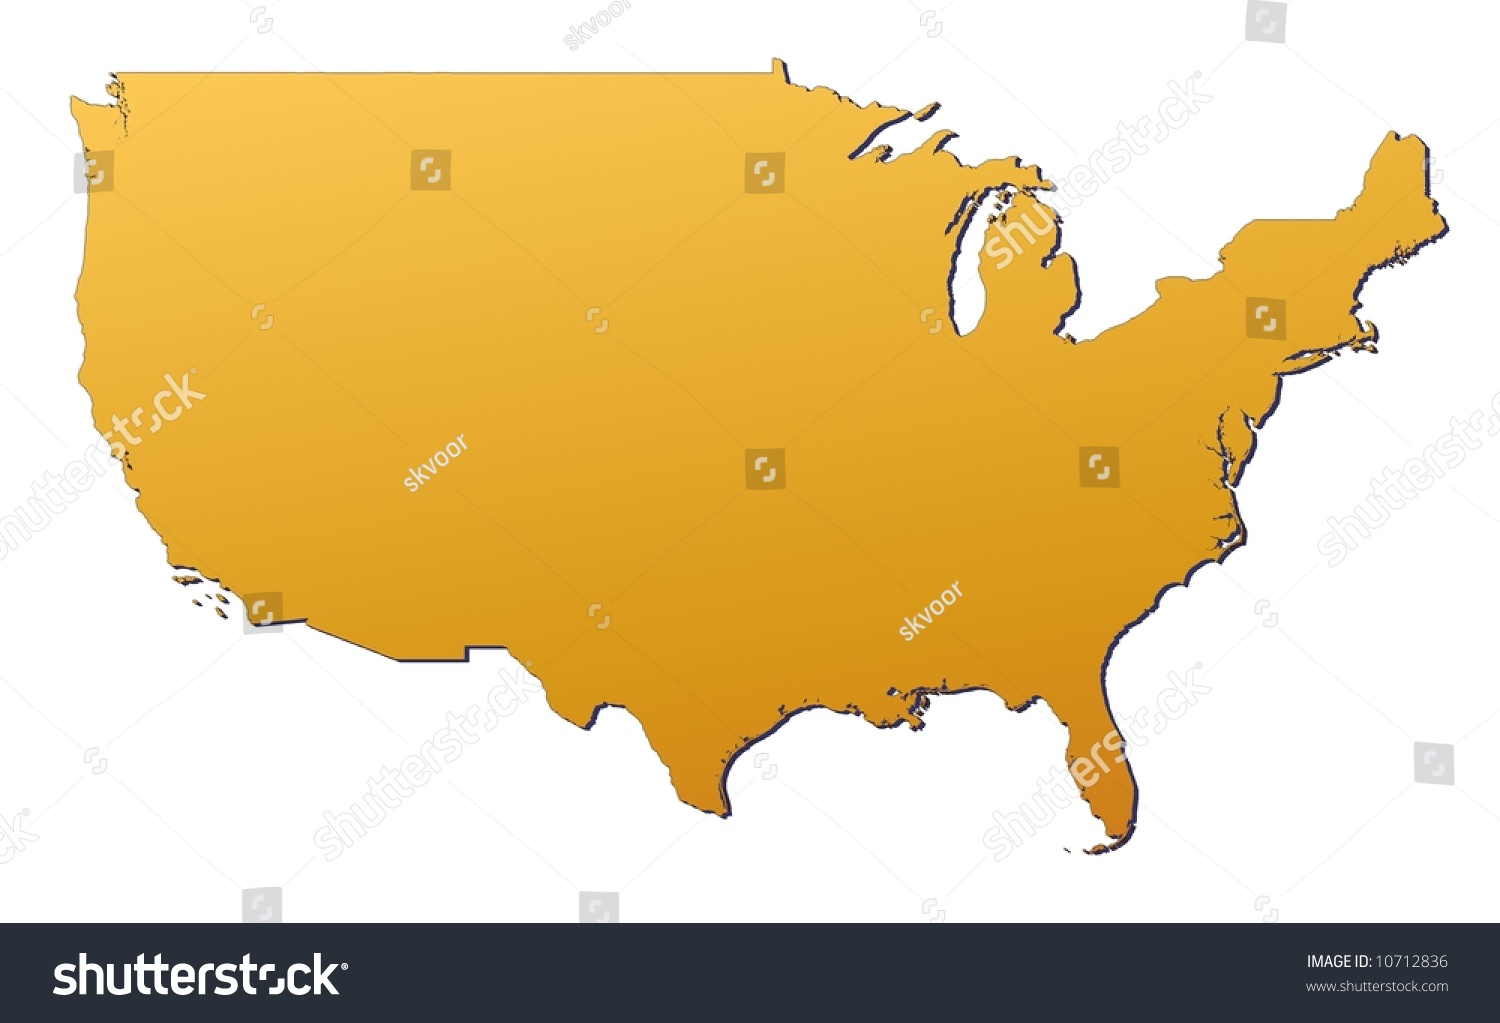 united states map filled with orange gradient mercator projection